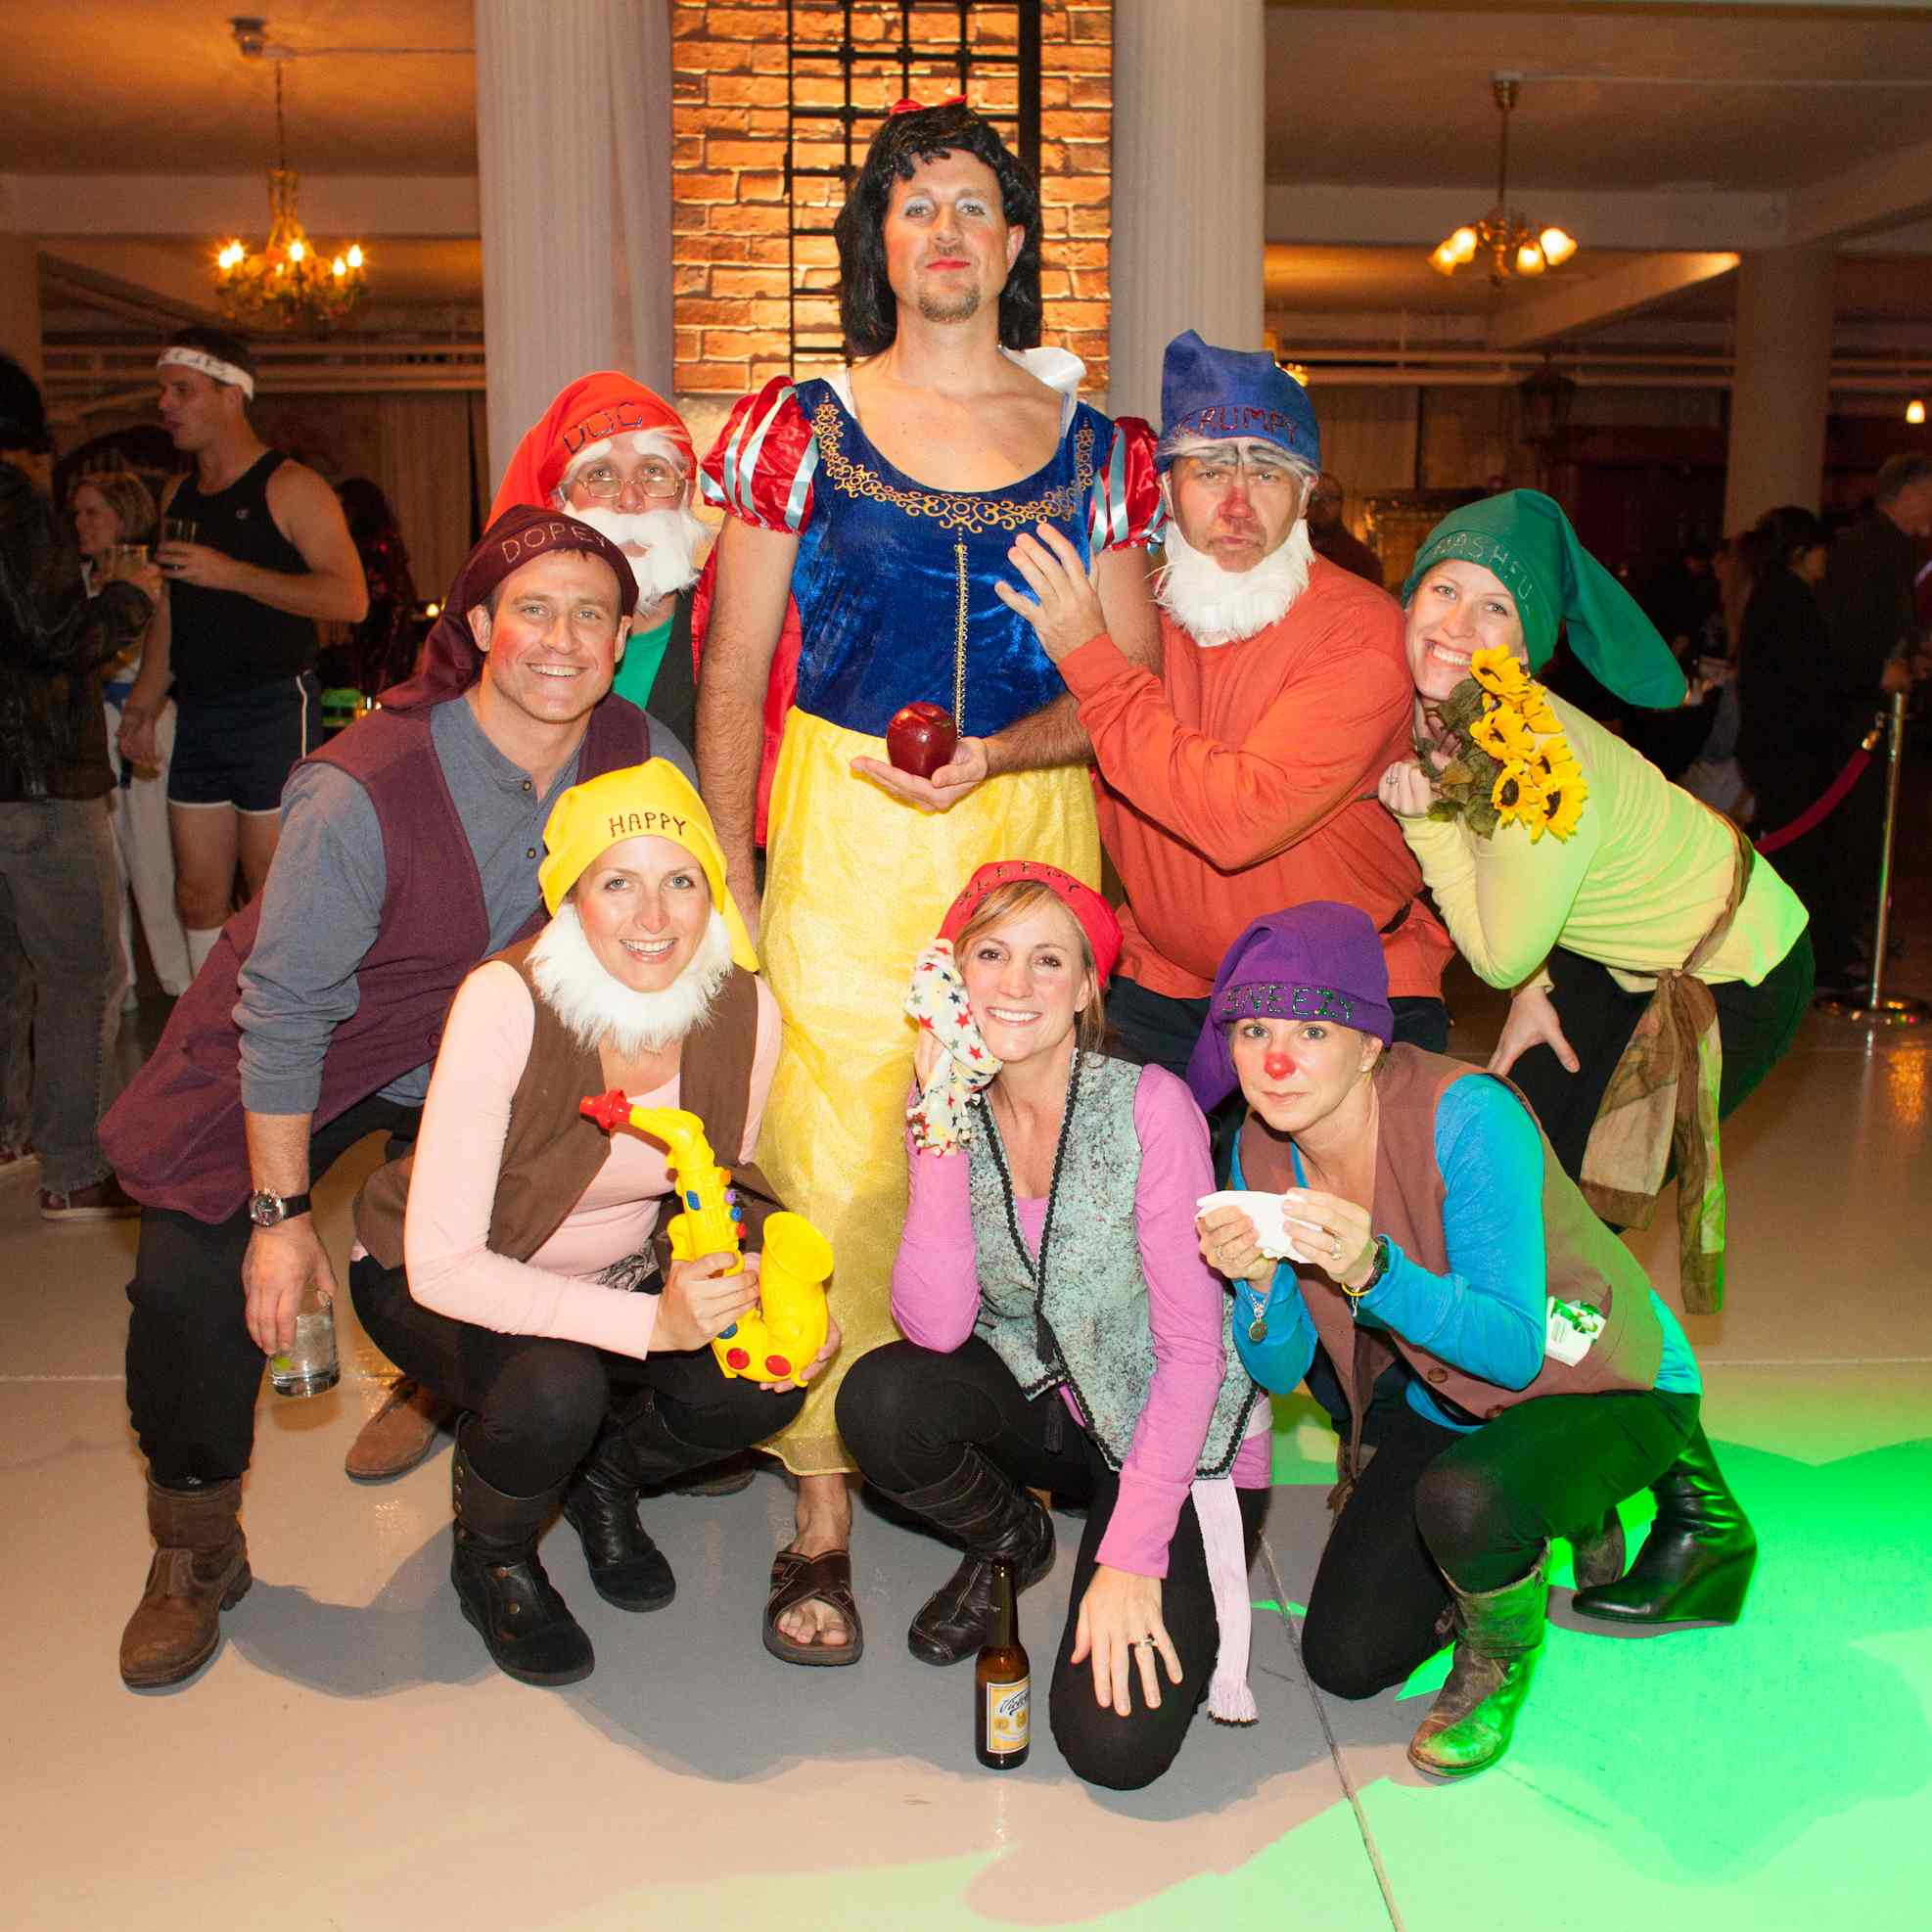 Snow White and her Dwarves.